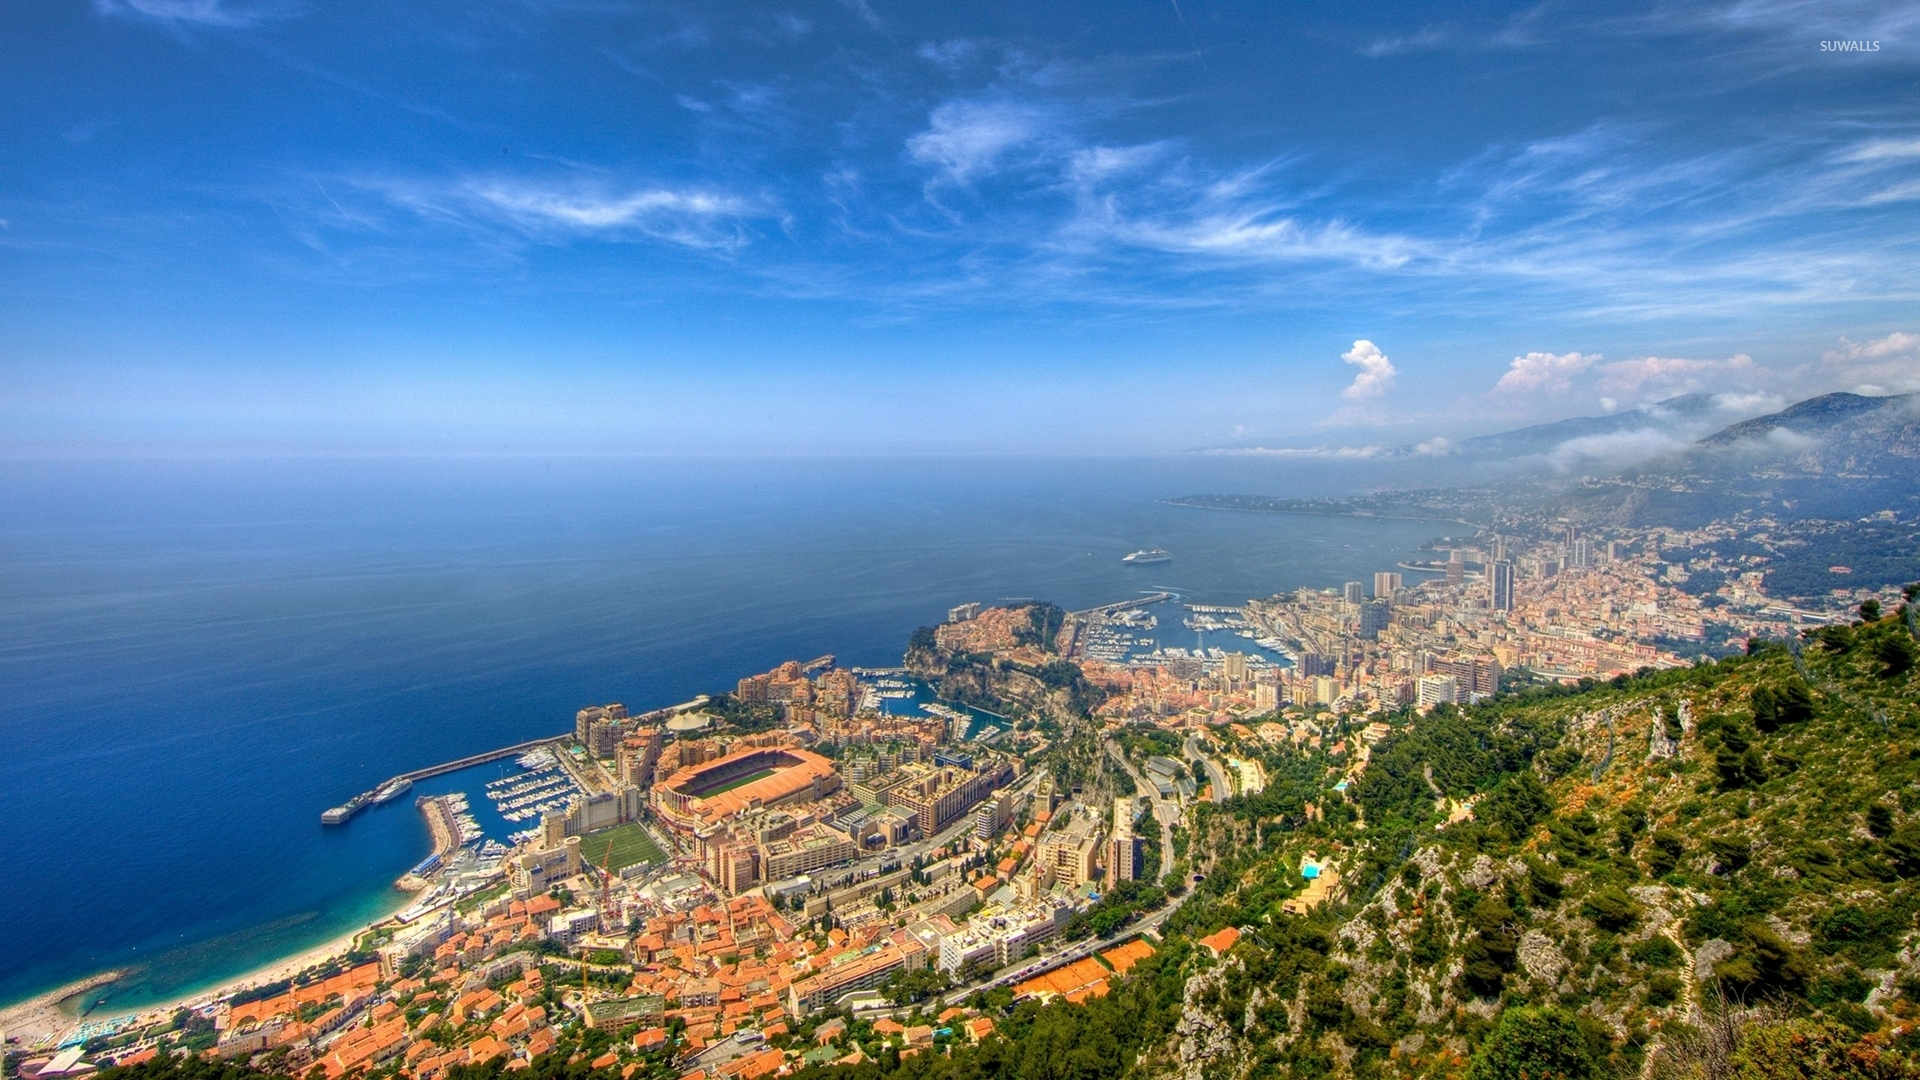 top view of monte carlo wallpaper - world wallpapers - #52431